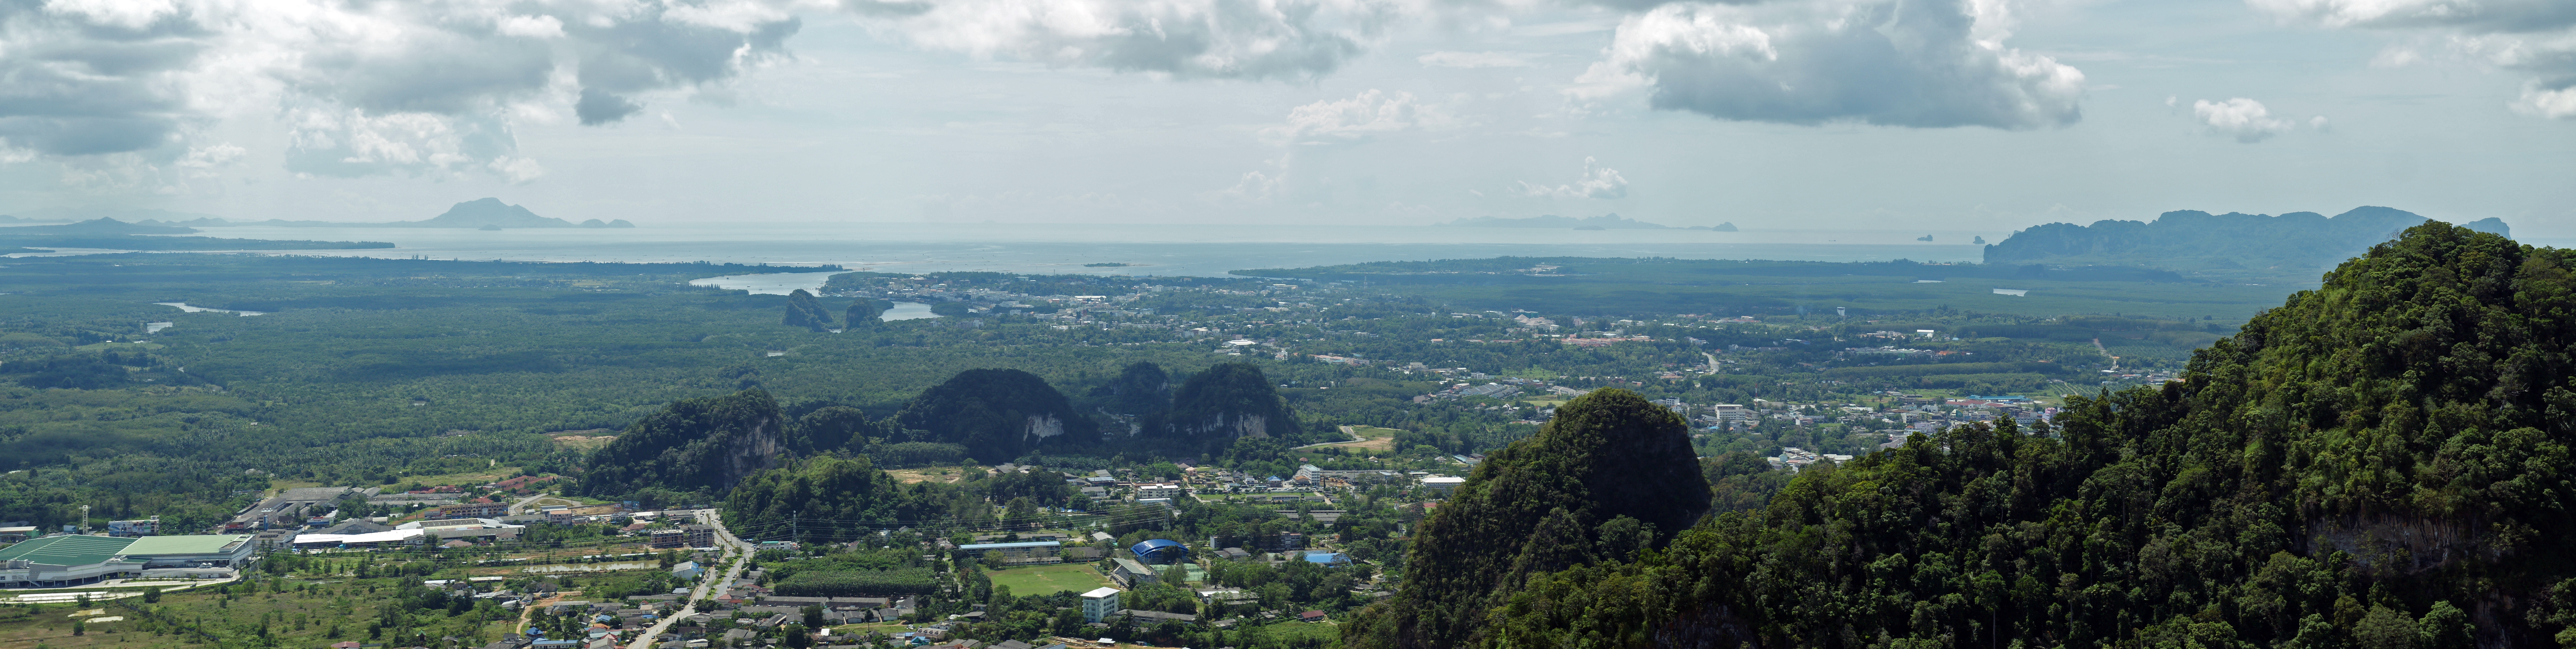 Panoramic view over Krabi from Tiger Cave Temple.